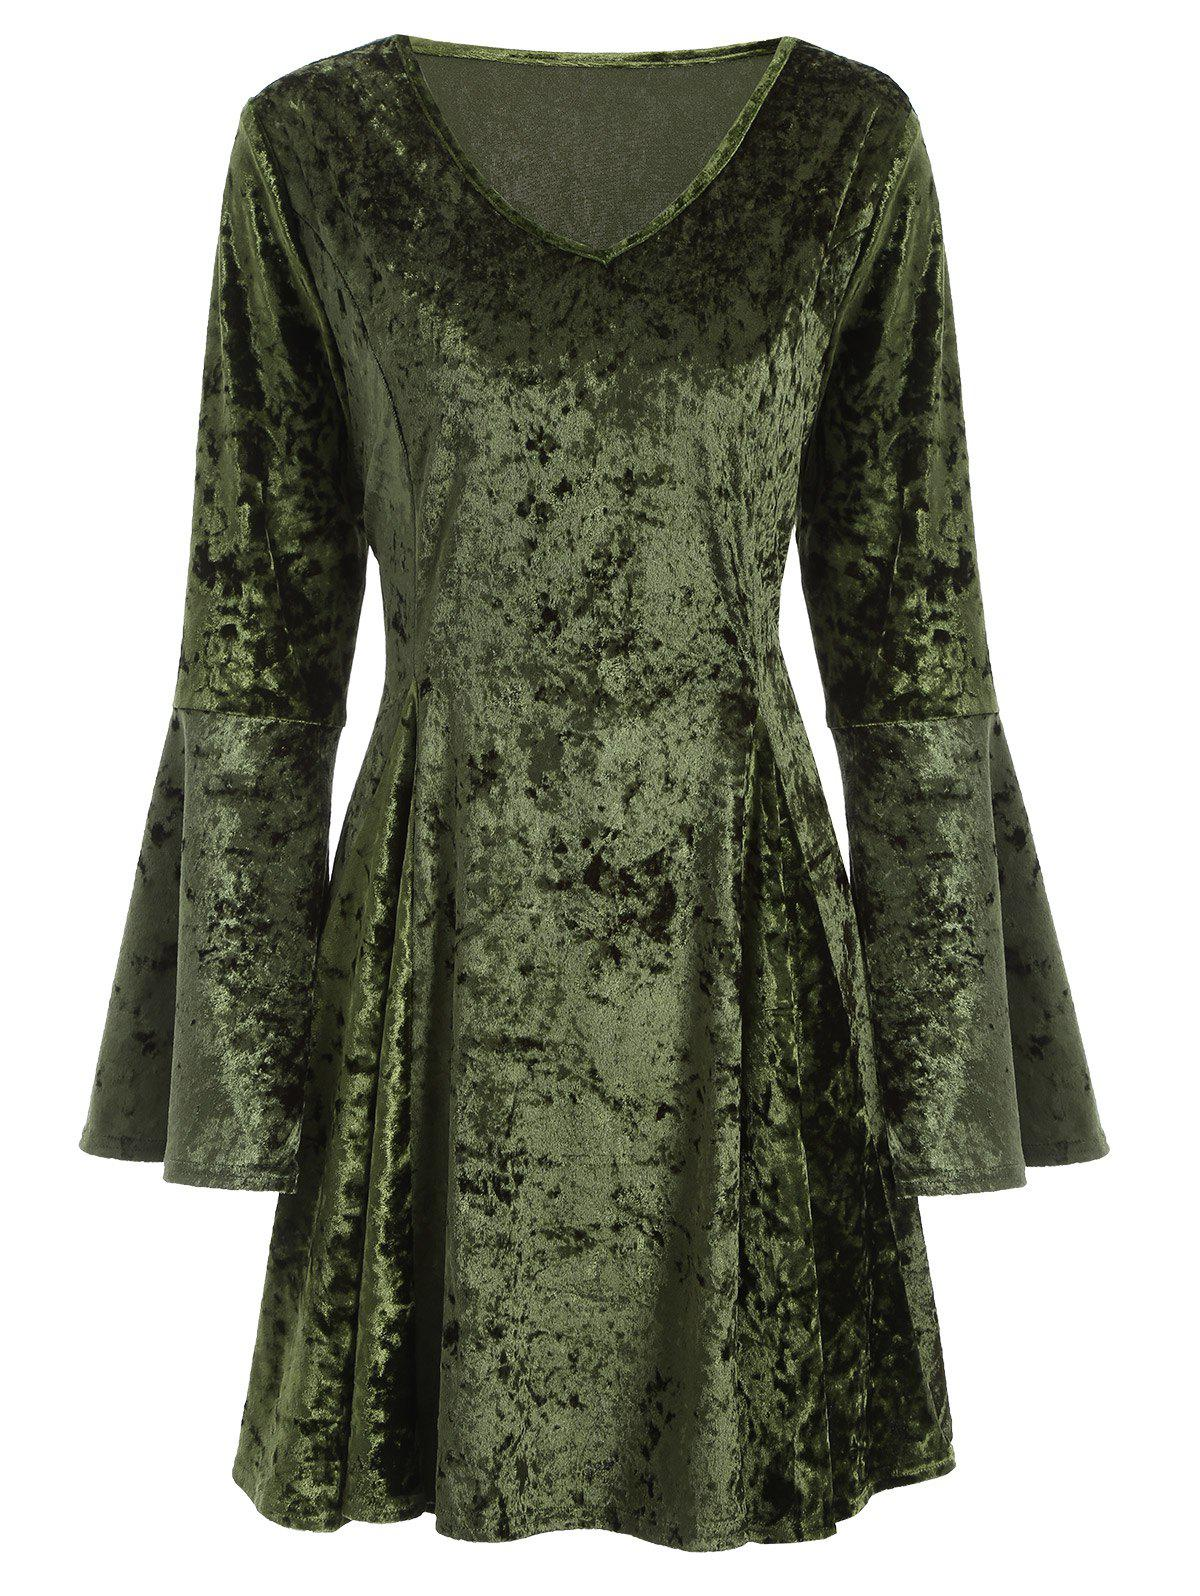 Green lace long sleeve dress